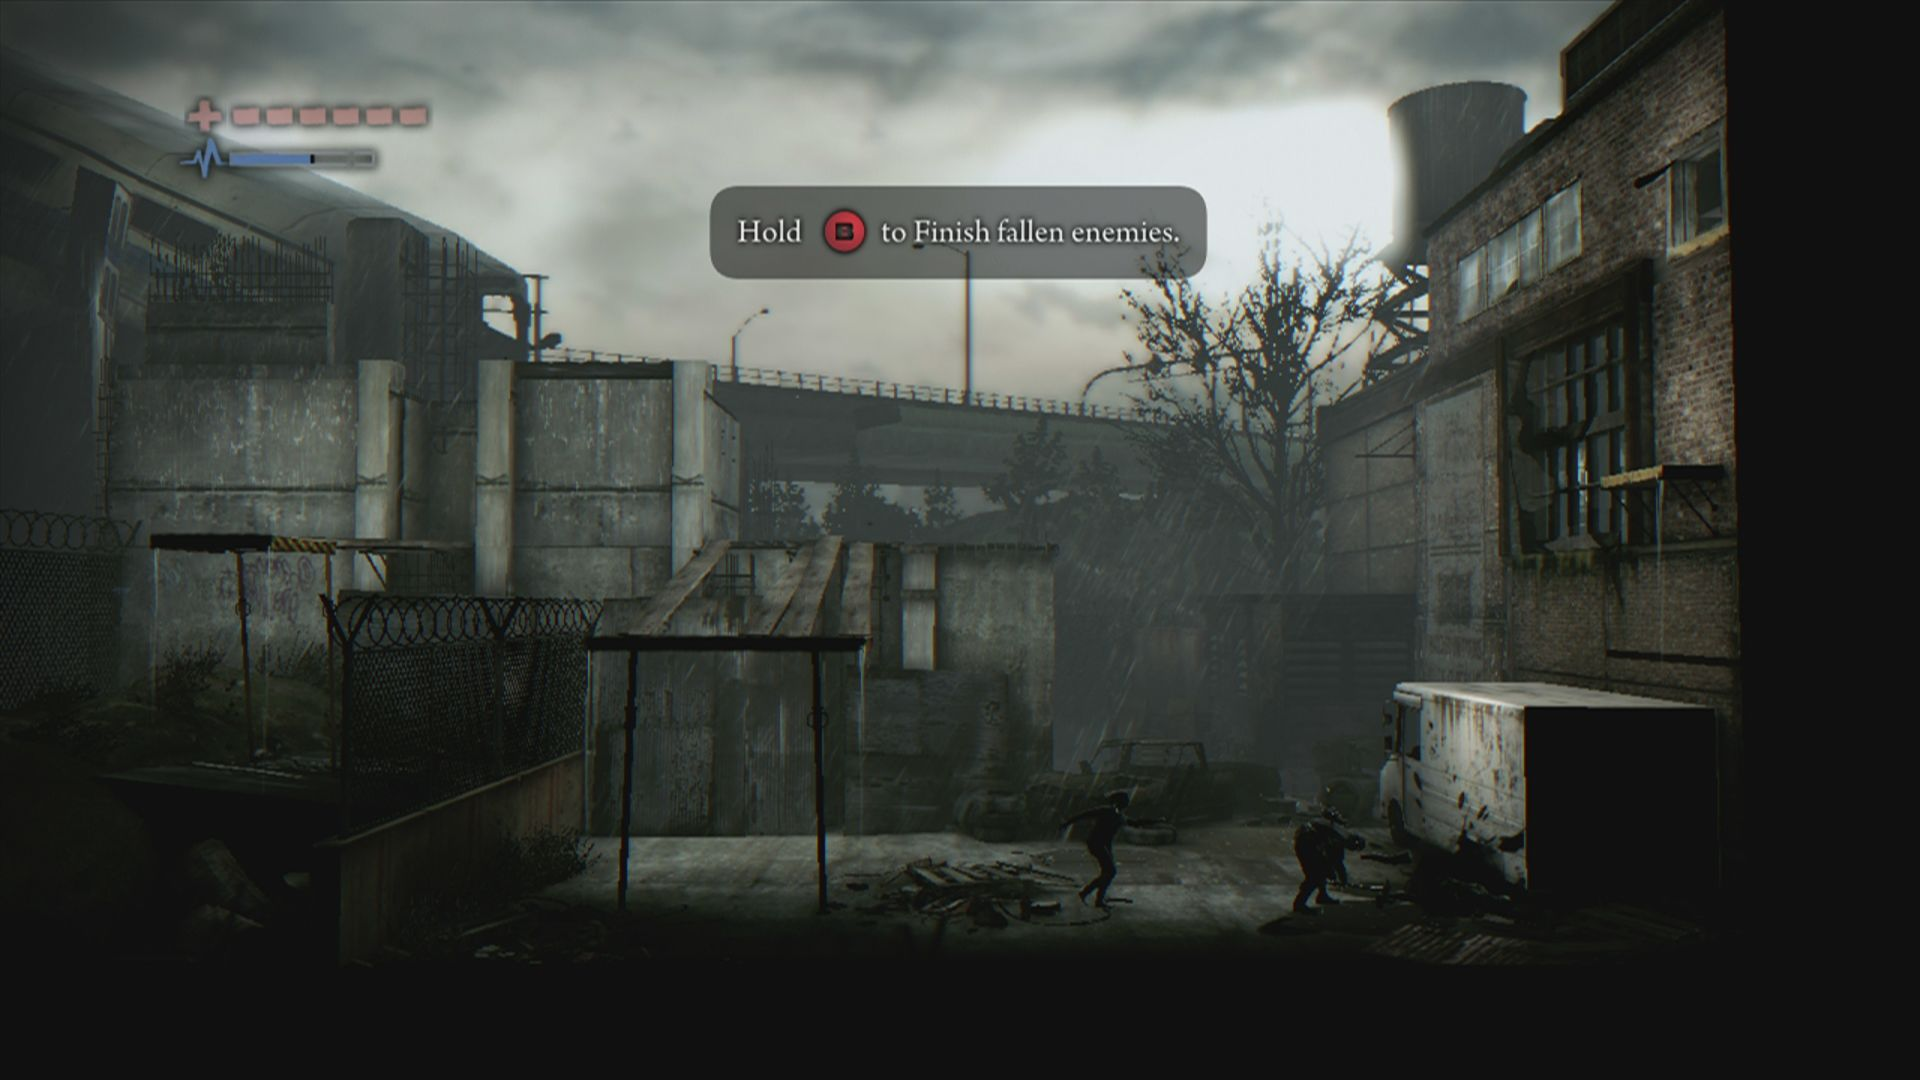 Deadlight Xbox 360 Despite having weapons, combat is seldom and most of the time best avoided